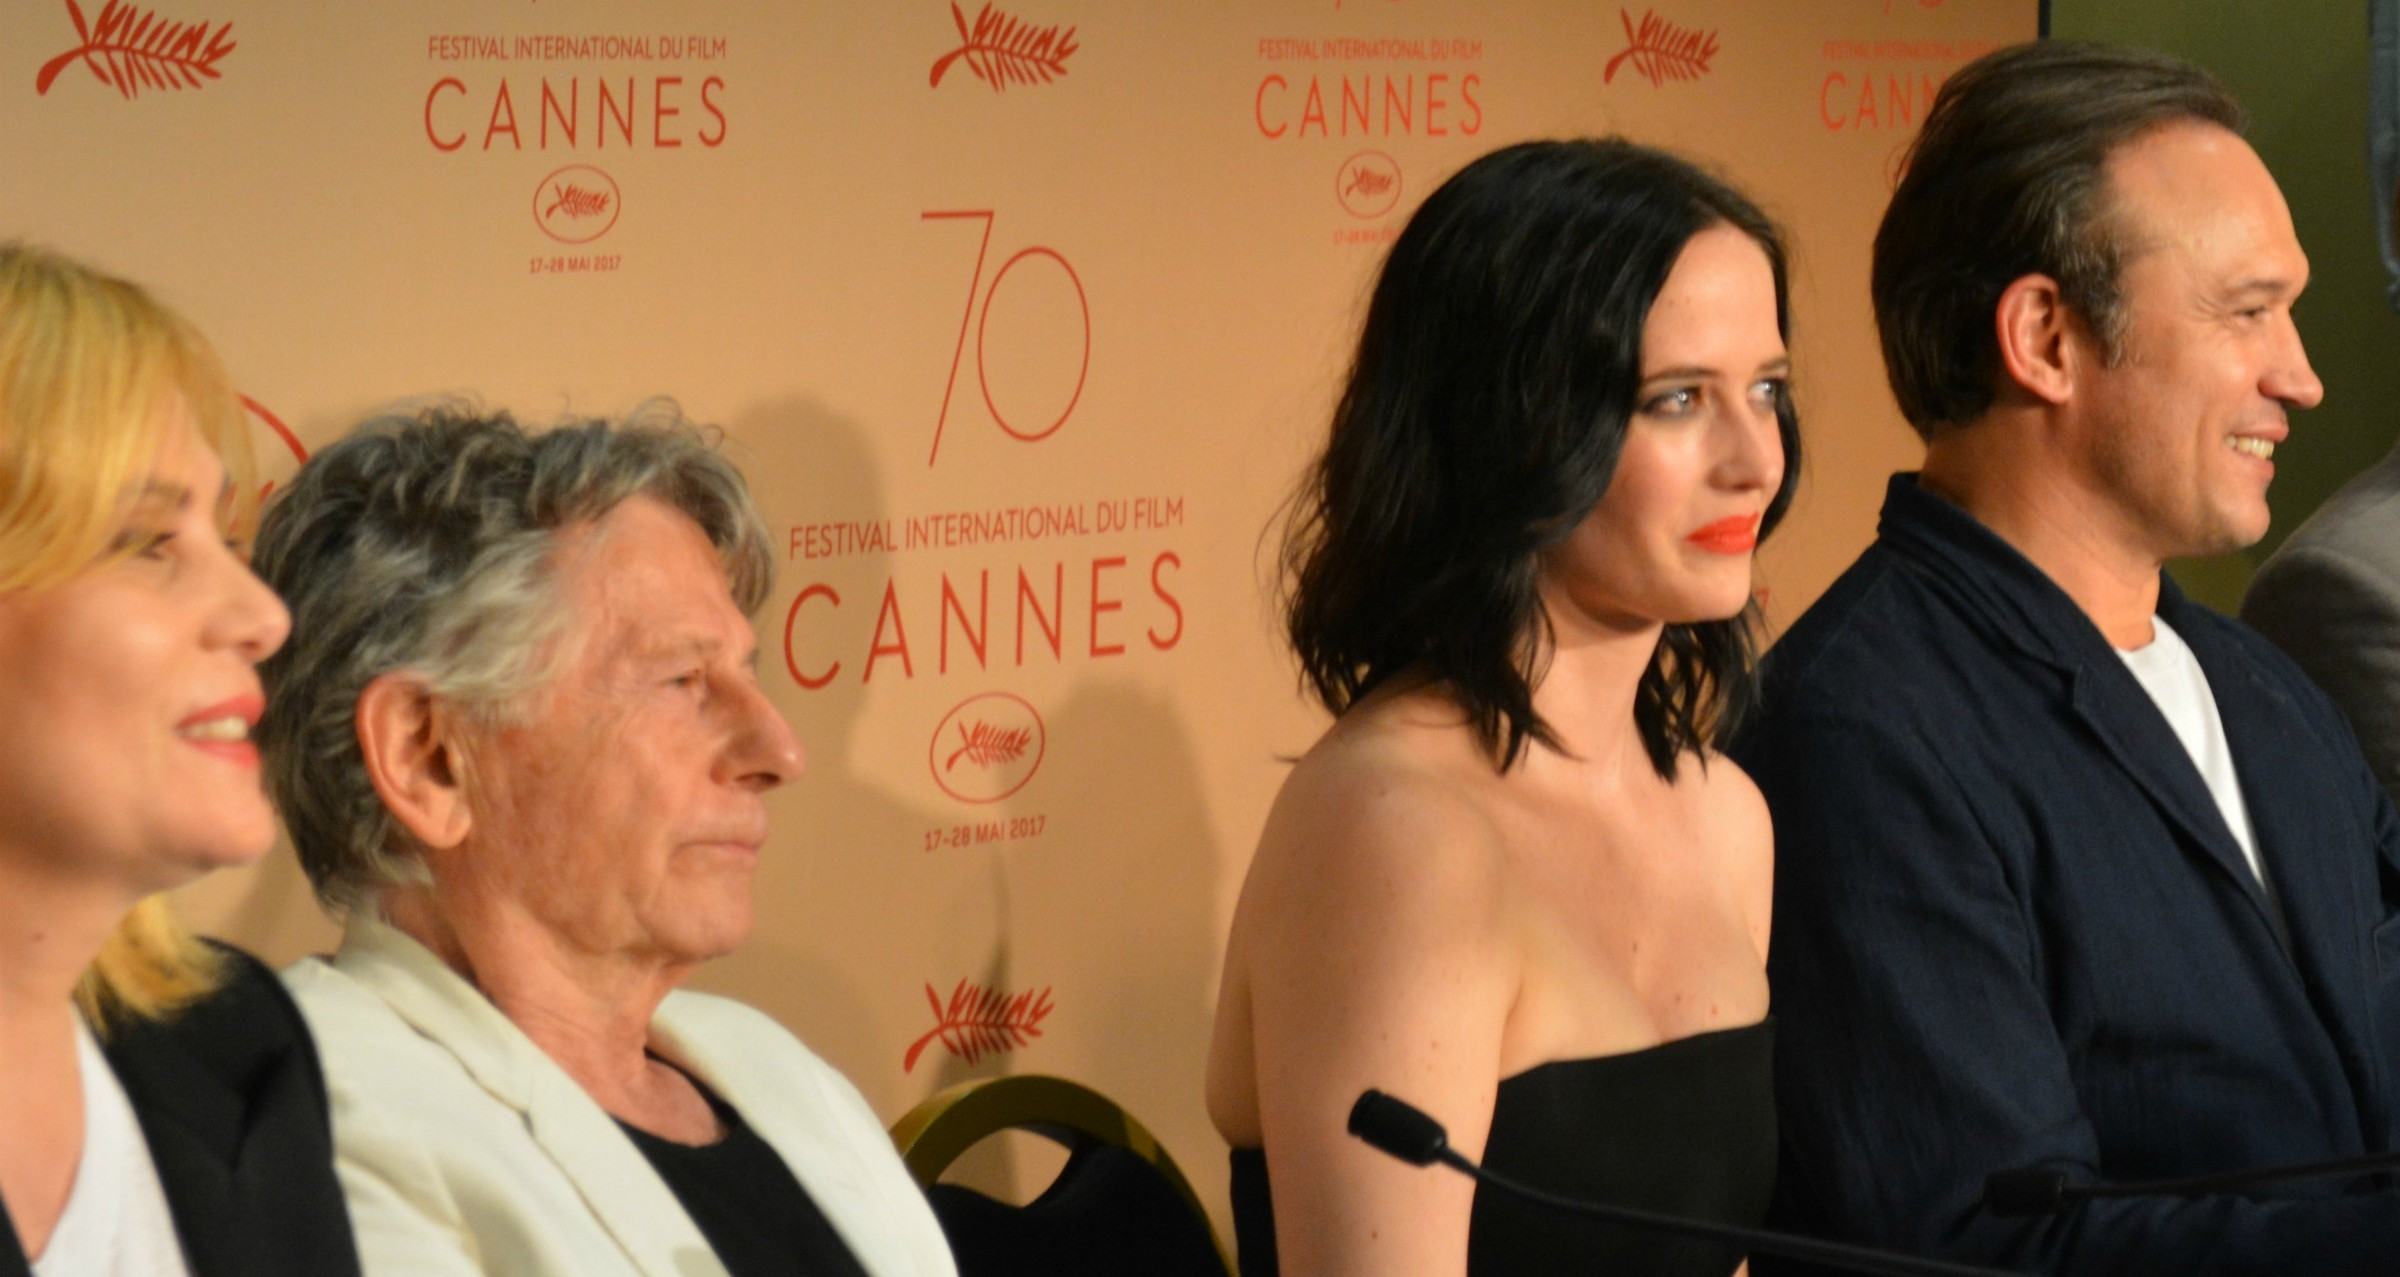 festival de cannes 2017, oneohtrix point never, good time, alexandre desplat, roman polanski, raymond depardon, 12 jours, l`amant double, francois ozon, d`apres une histoire vraie, delphine de vigan